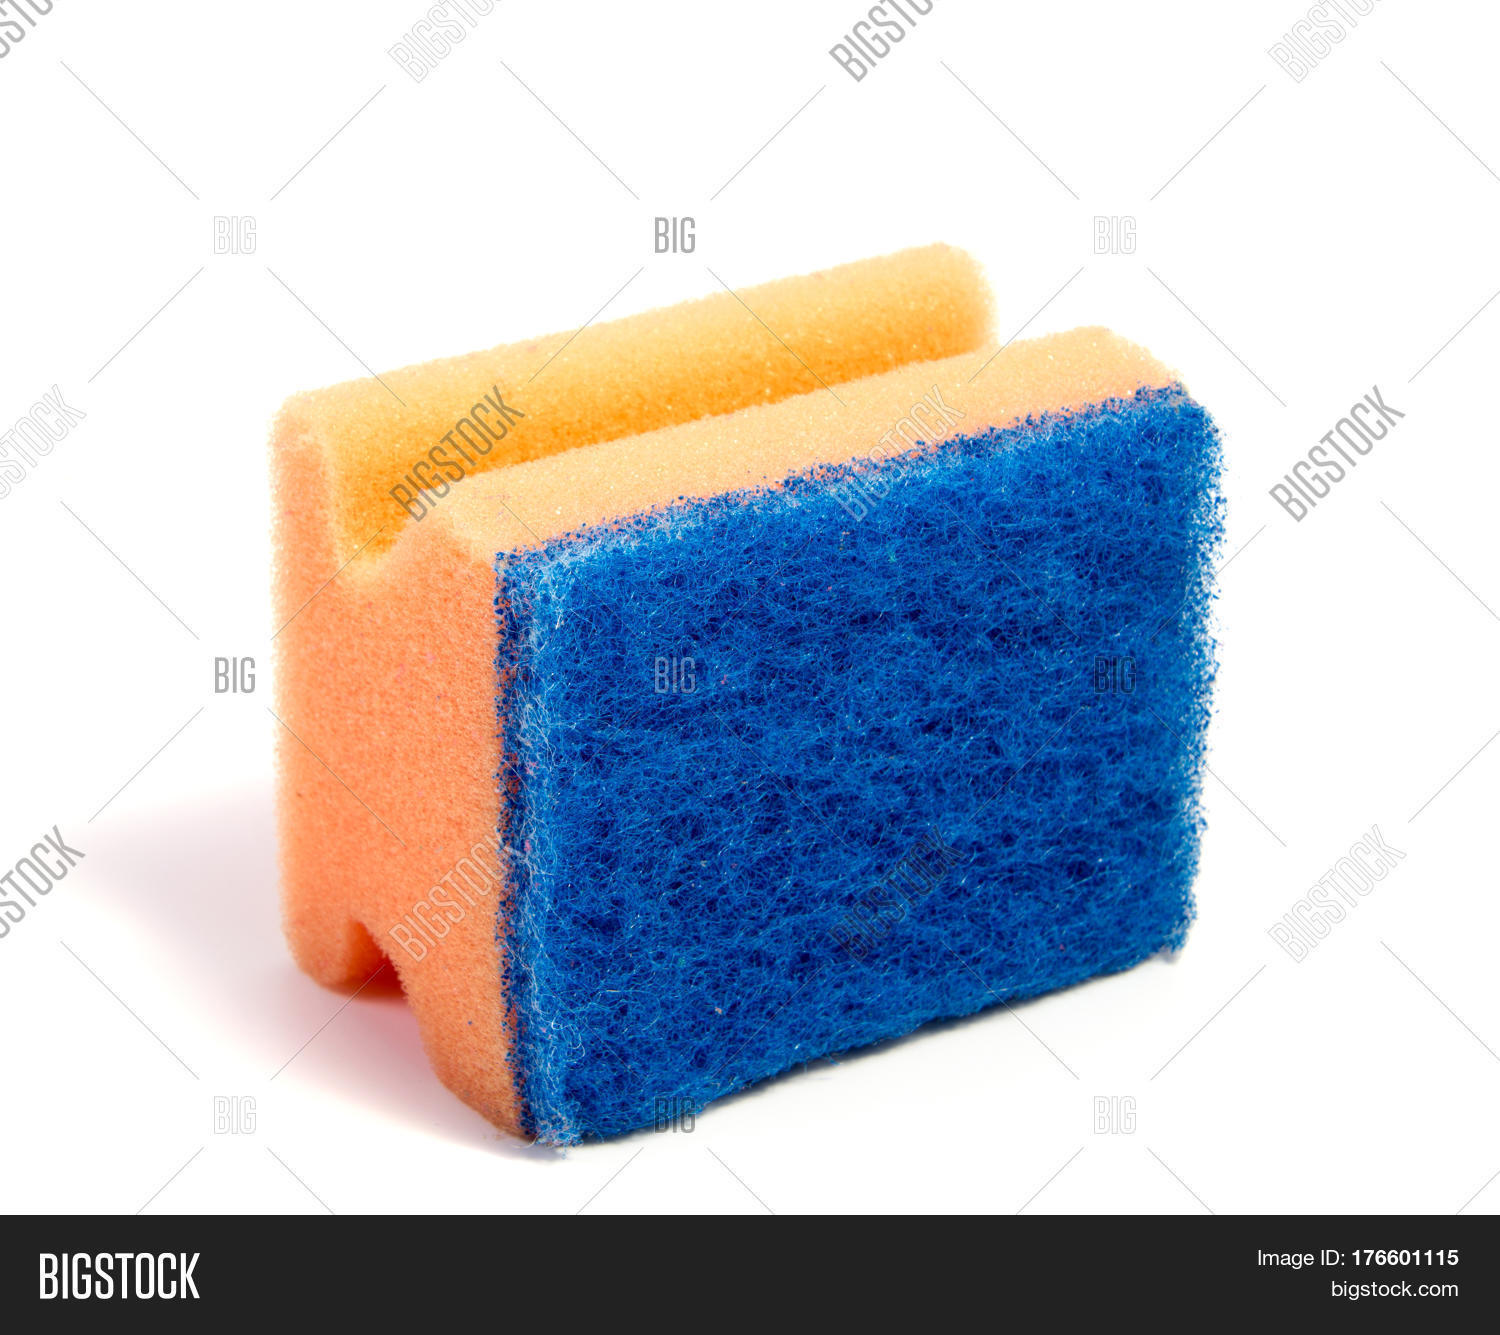 Colored kitchen sponges isolated on image photo bigstock - Seven different uses of the kitchen sponge ...